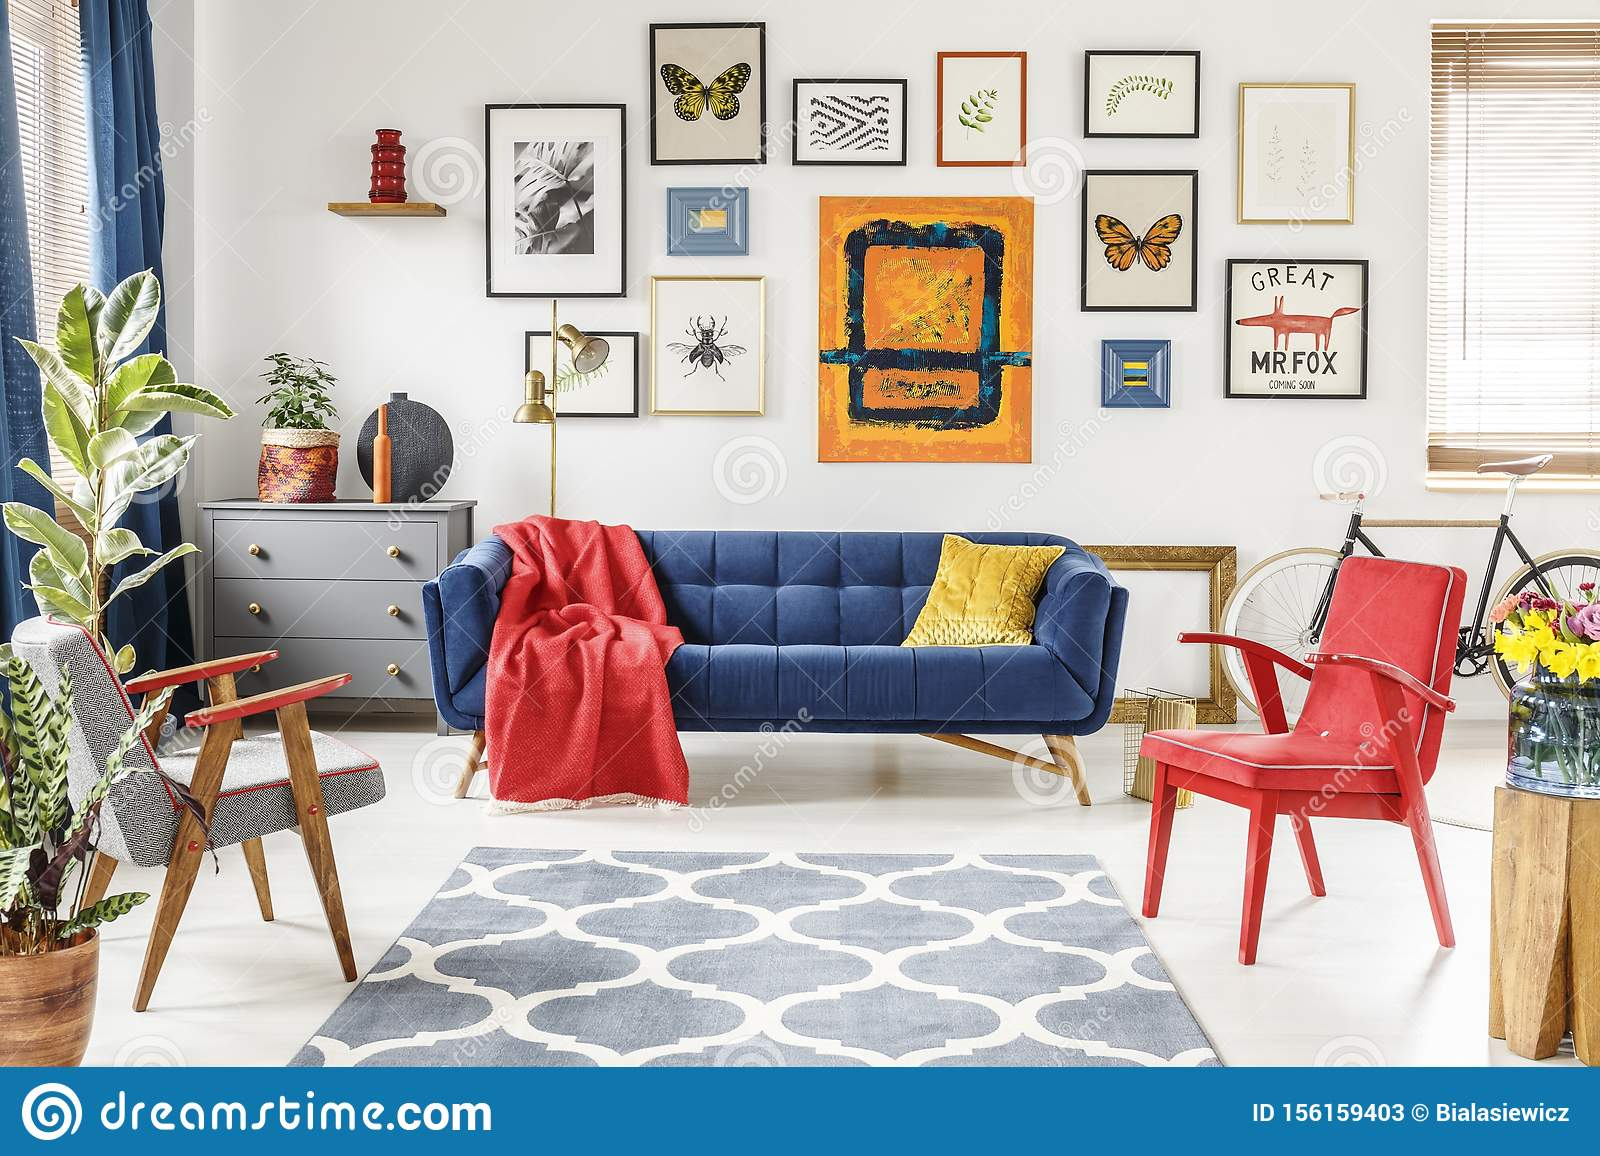 Patterned Carpet In Colorful Living Room Interior With Red Armch Stock Image Image Of Furniture Gallery 156159403